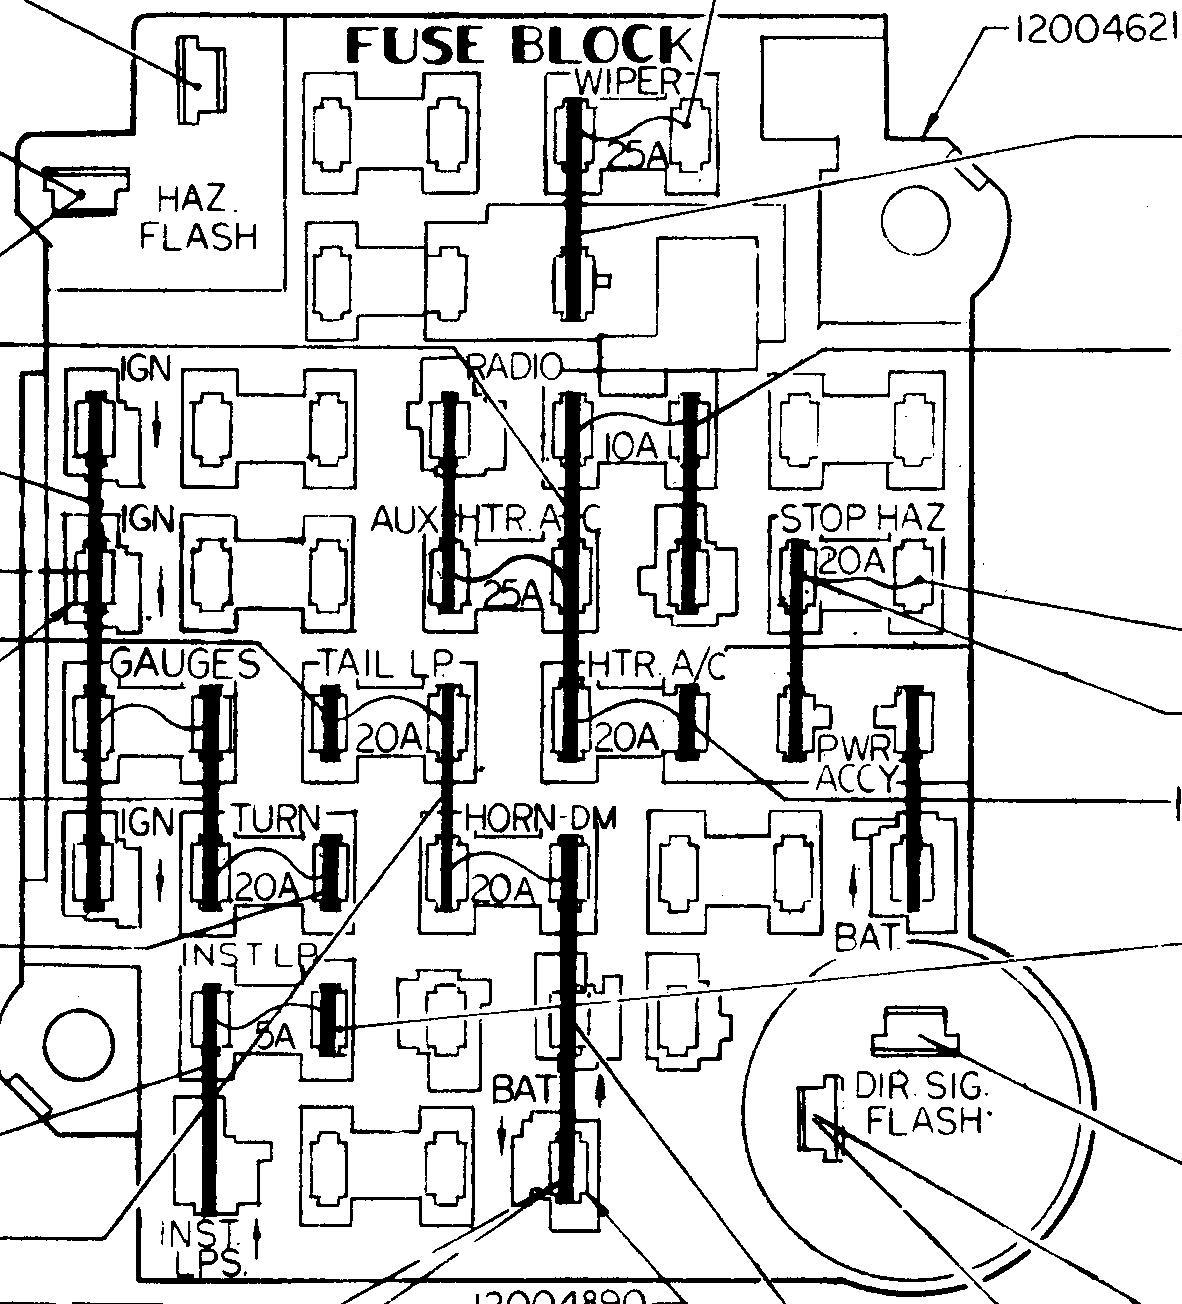 [WRG-8538] 1988 Chevy S10 Fuse Block Diagram